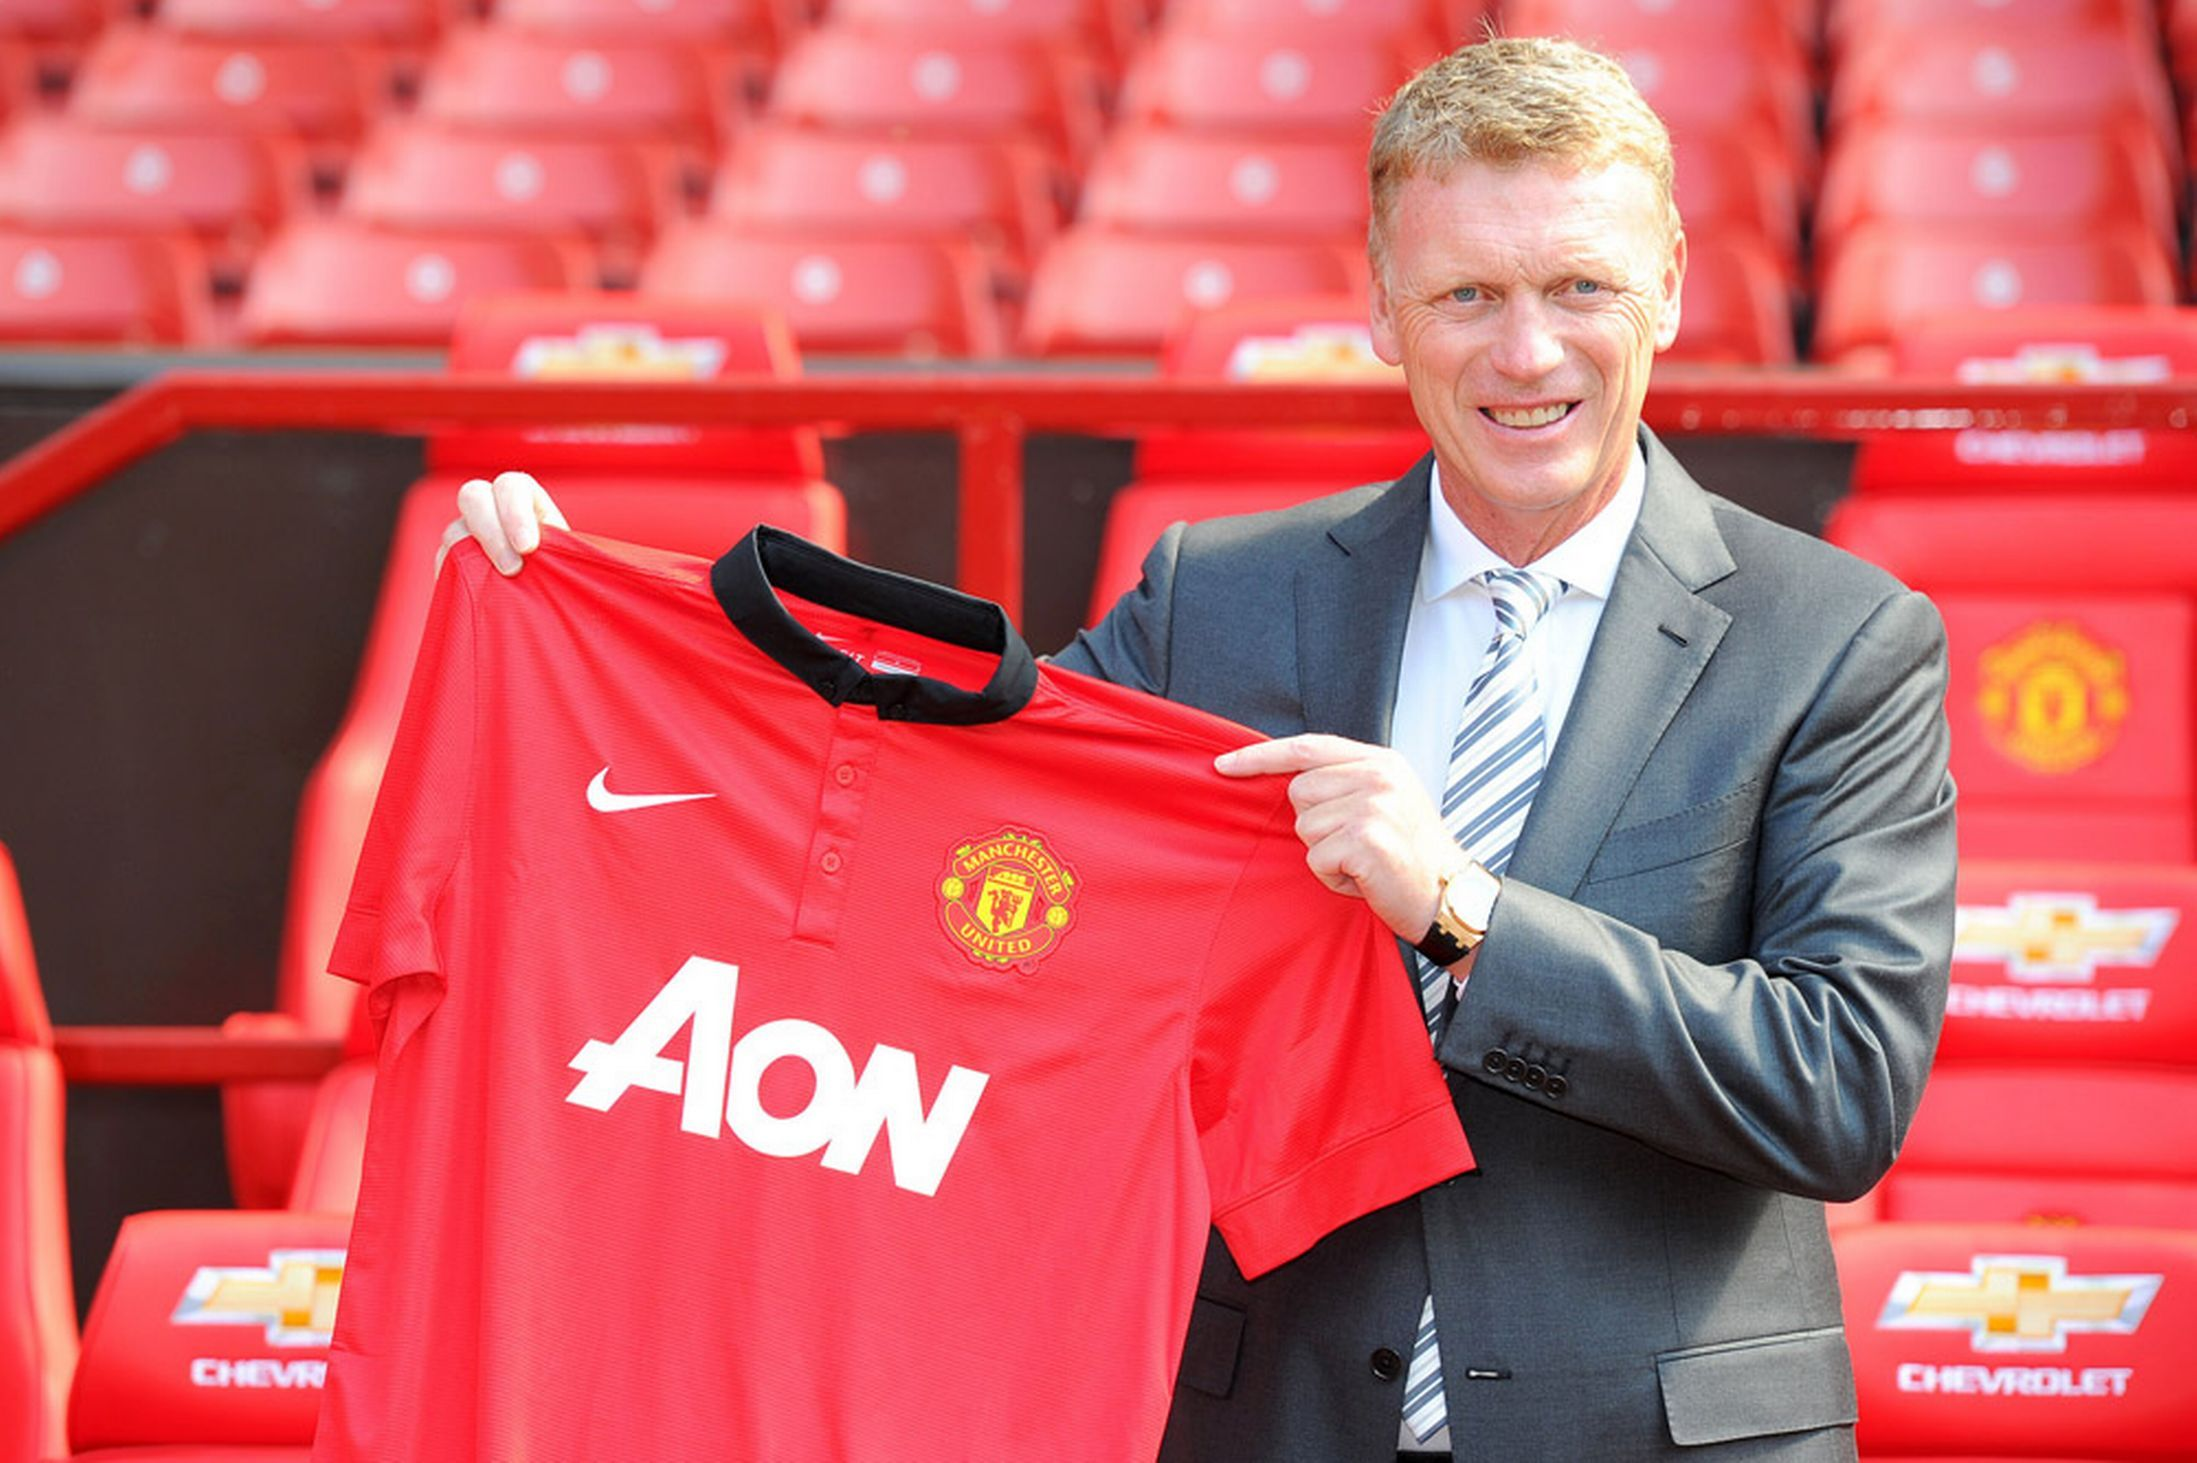 David Moyes Press Conference Manchester United S New Boss Unveiled As It Happened David Moyes Manchester United Football Club Manchester United